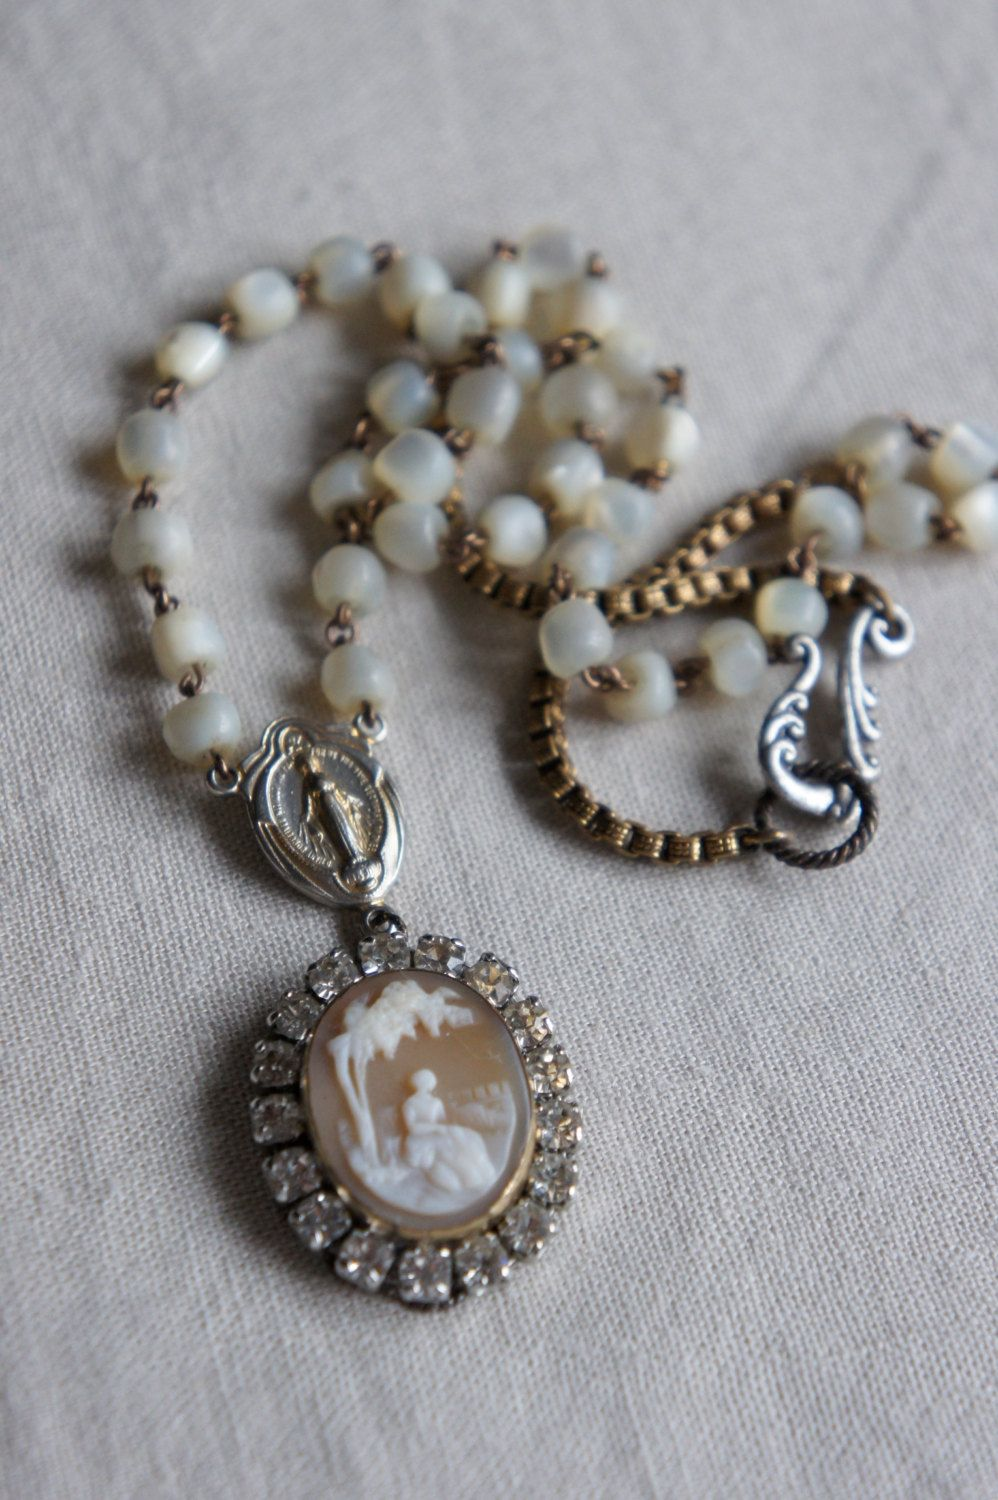 Vintage assemblage necklace old cameo rhinestones rosary chain assemblage jewelry - Simple Elegance by French Feather Designs..via Etsy.